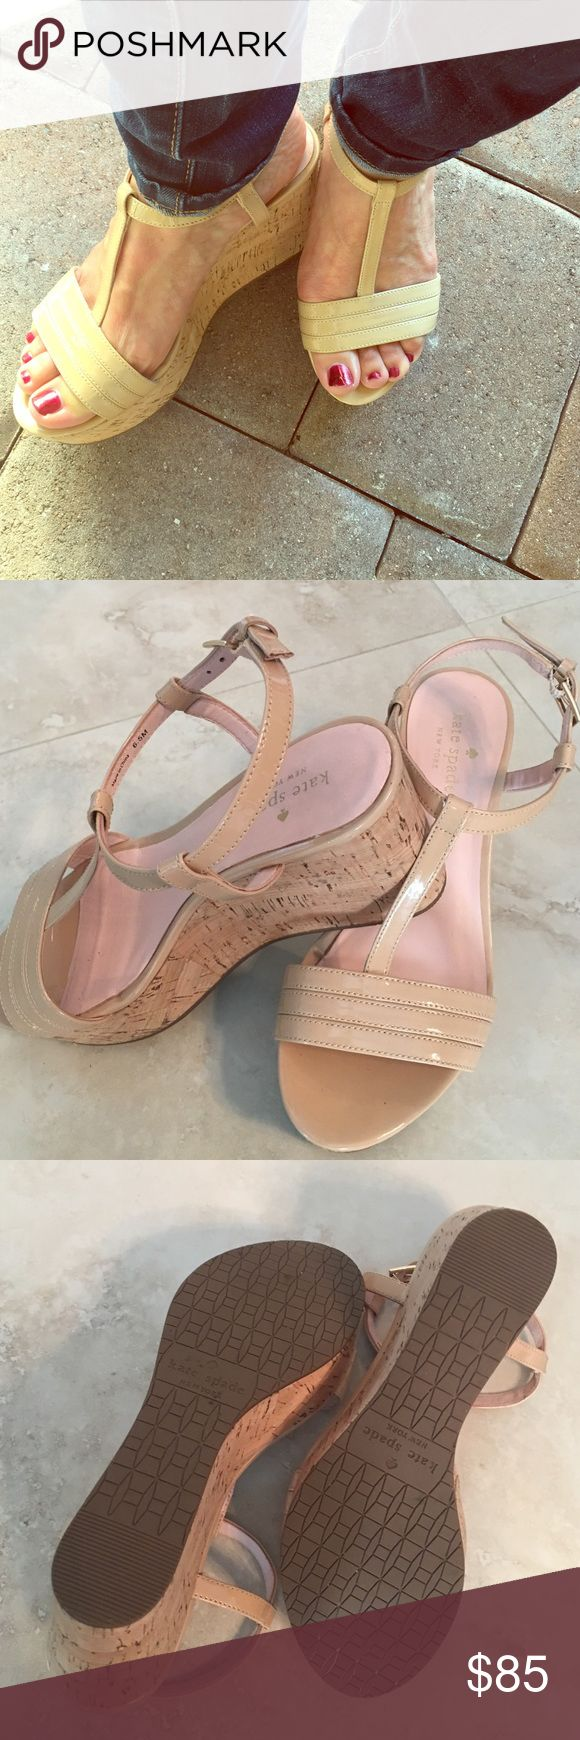 "The Tallin Wedge by kate spade In ""Powder Patent"" the Tallin Cork Wedge by kate spade is the perfect neutral sandal for your wardrobe!  Excellent, like new condition. Worn TWICE! kate spade Shoes Wedges"